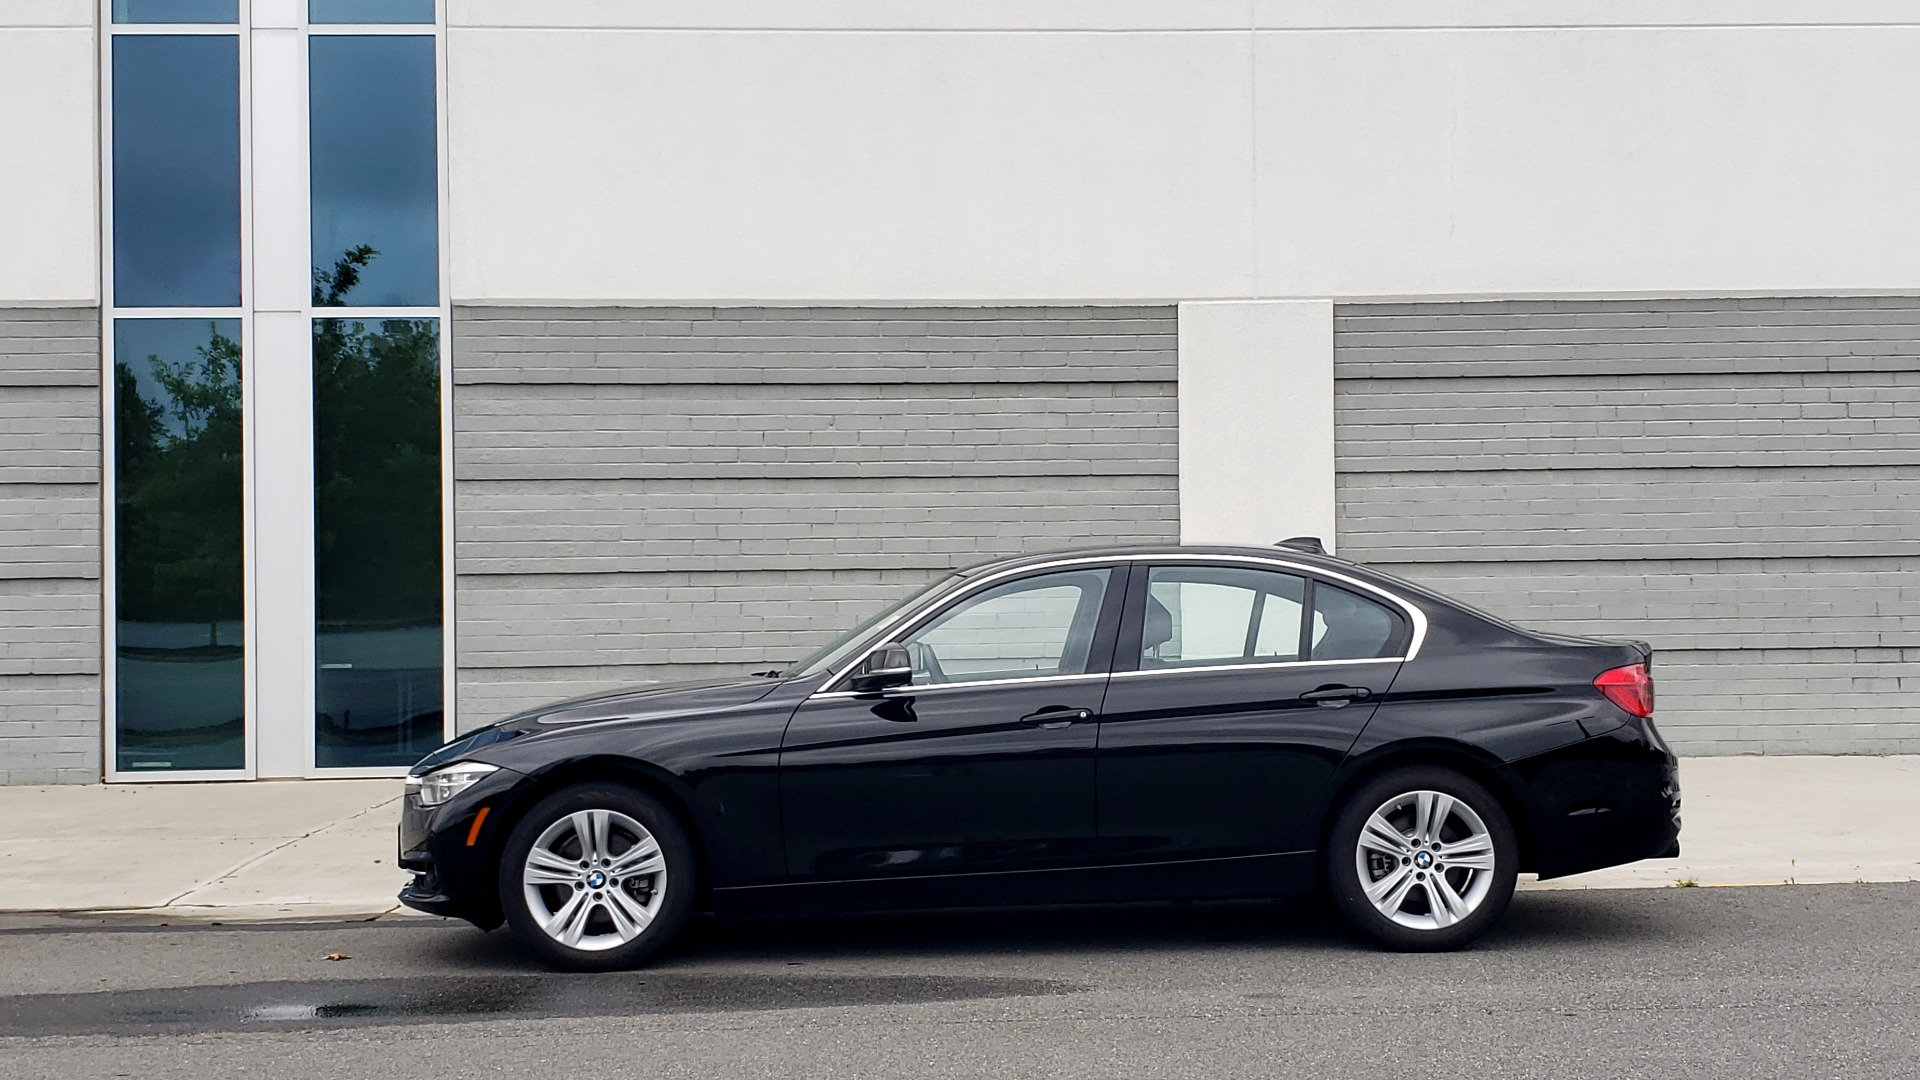 Used 2018 BMW 3 SERIES 330IXDRIVE / CONV PKG / NAV / SUNROOF / HTD STS / REARVIEW for sale $26,552 at Formula Imports in Charlotte NC 28227 5